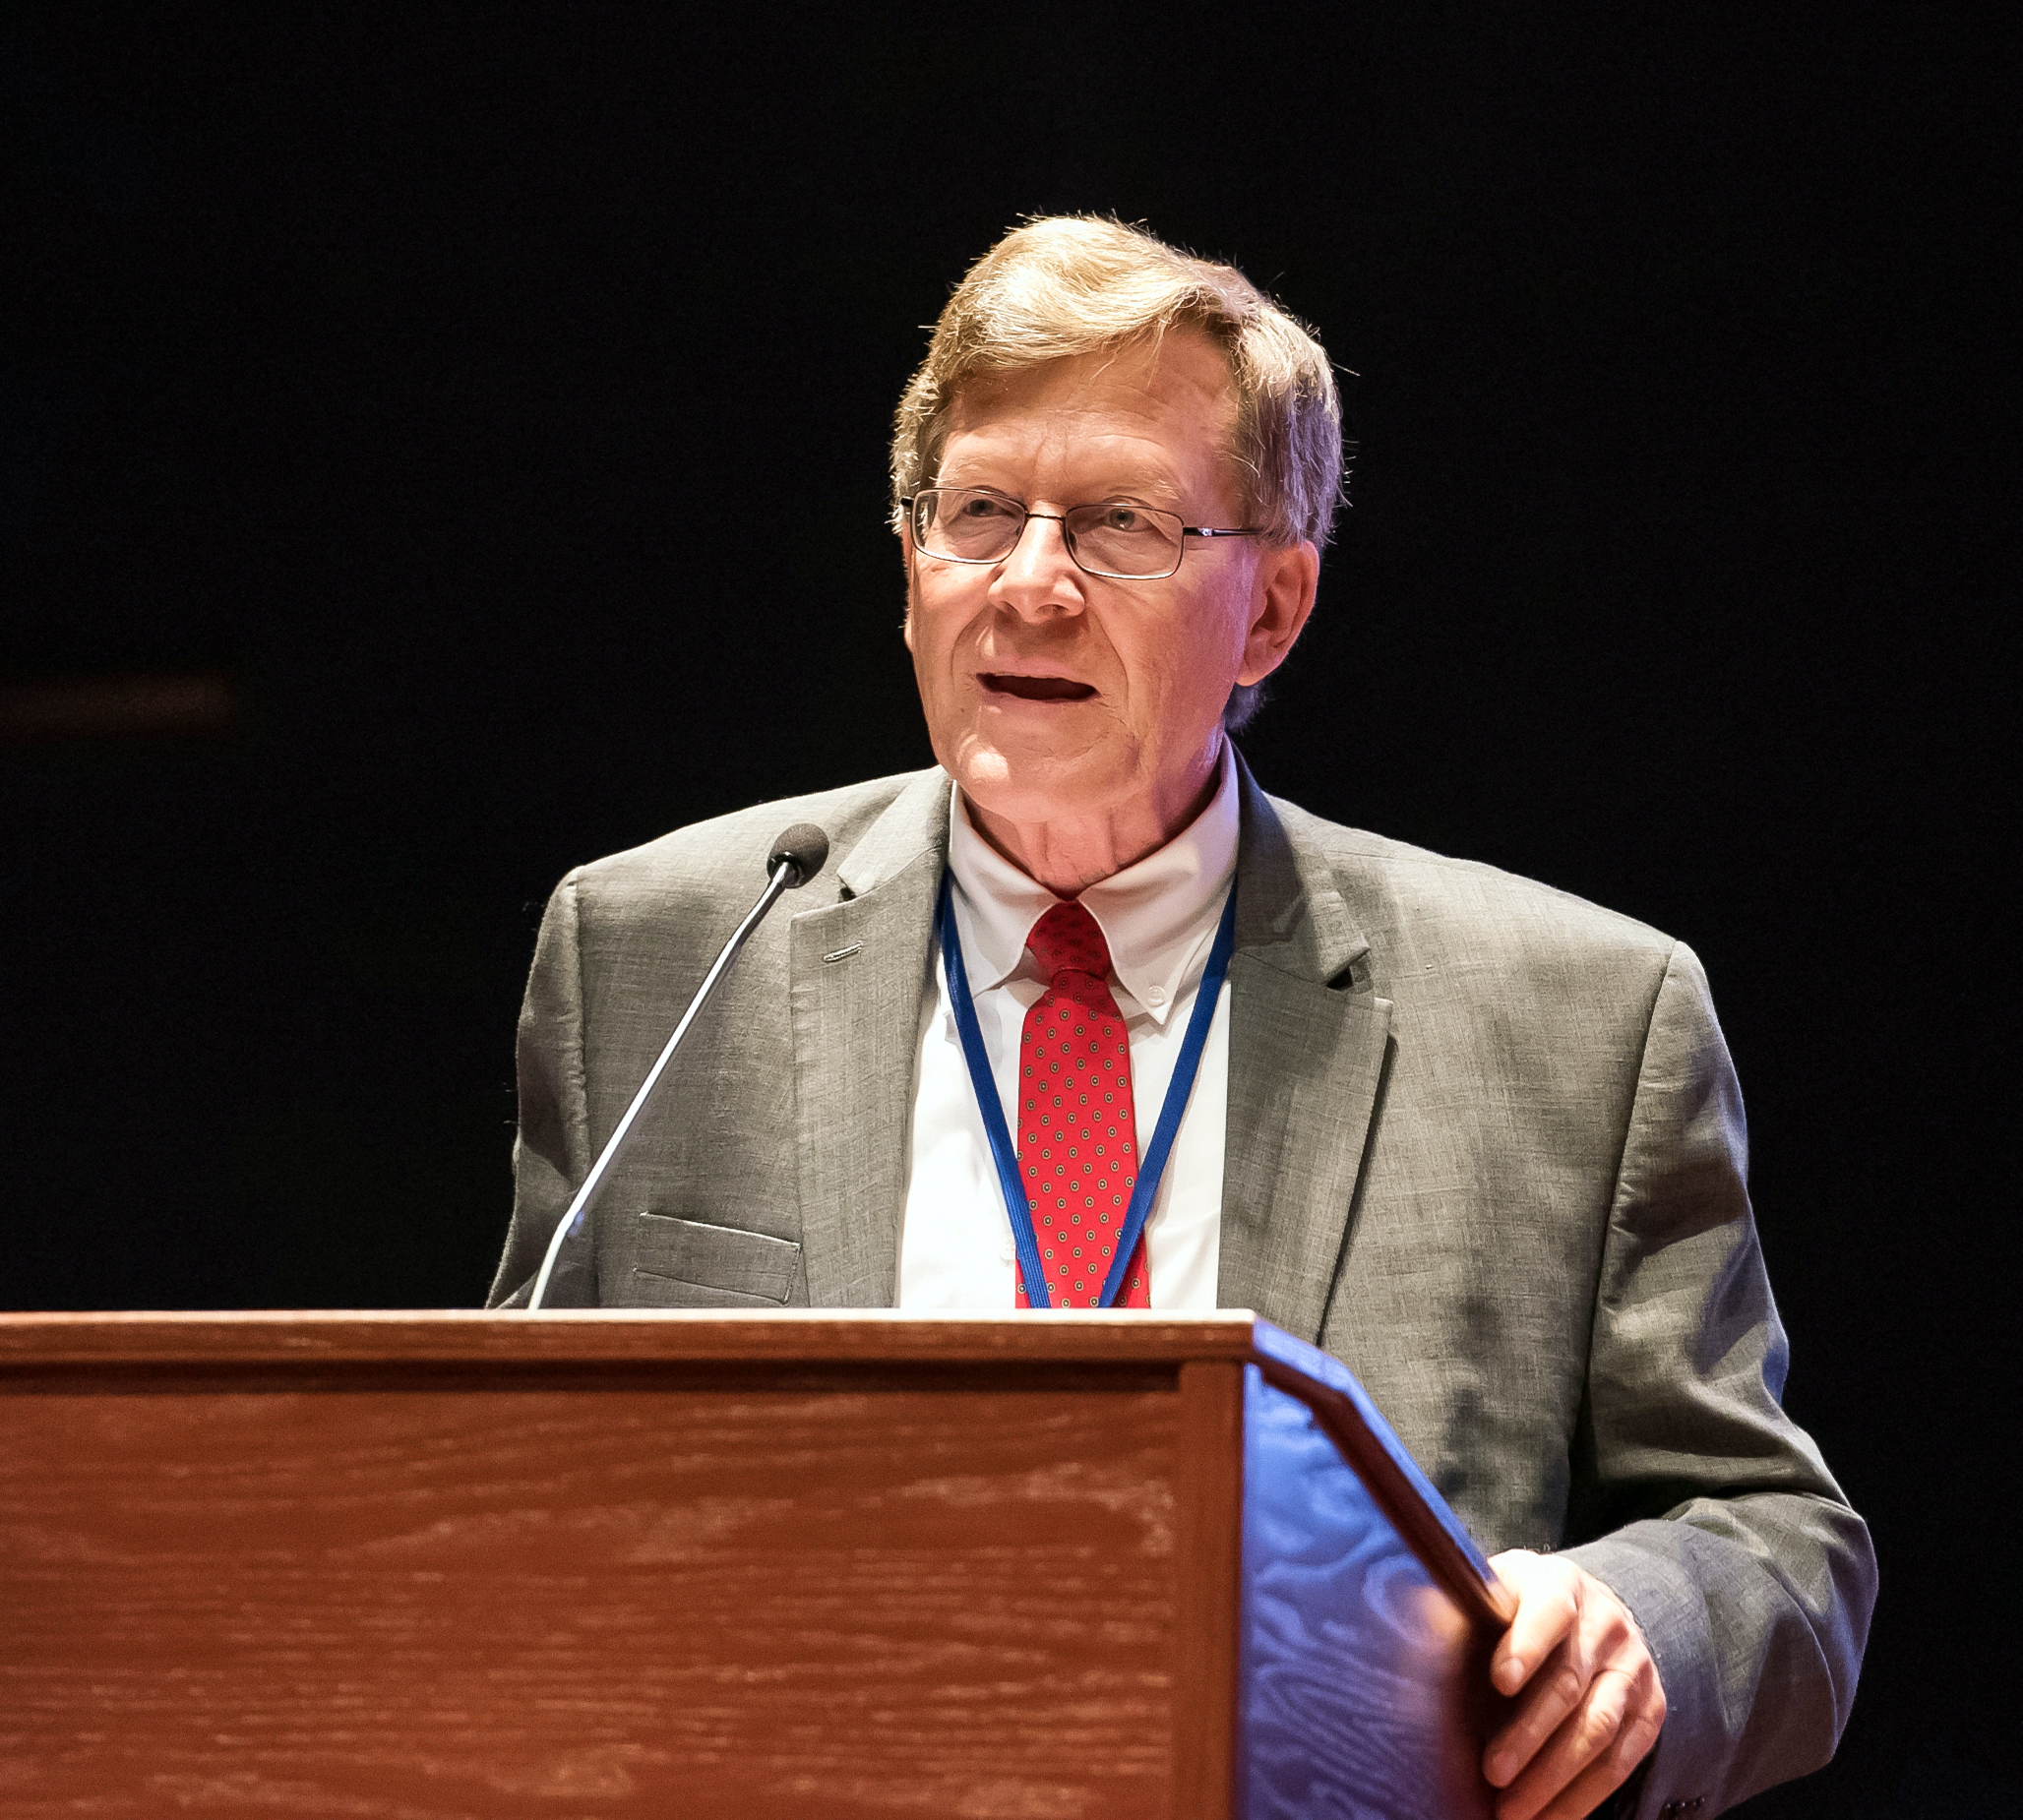 Kent Hill, Executive Director and Director, Middle East Action Team